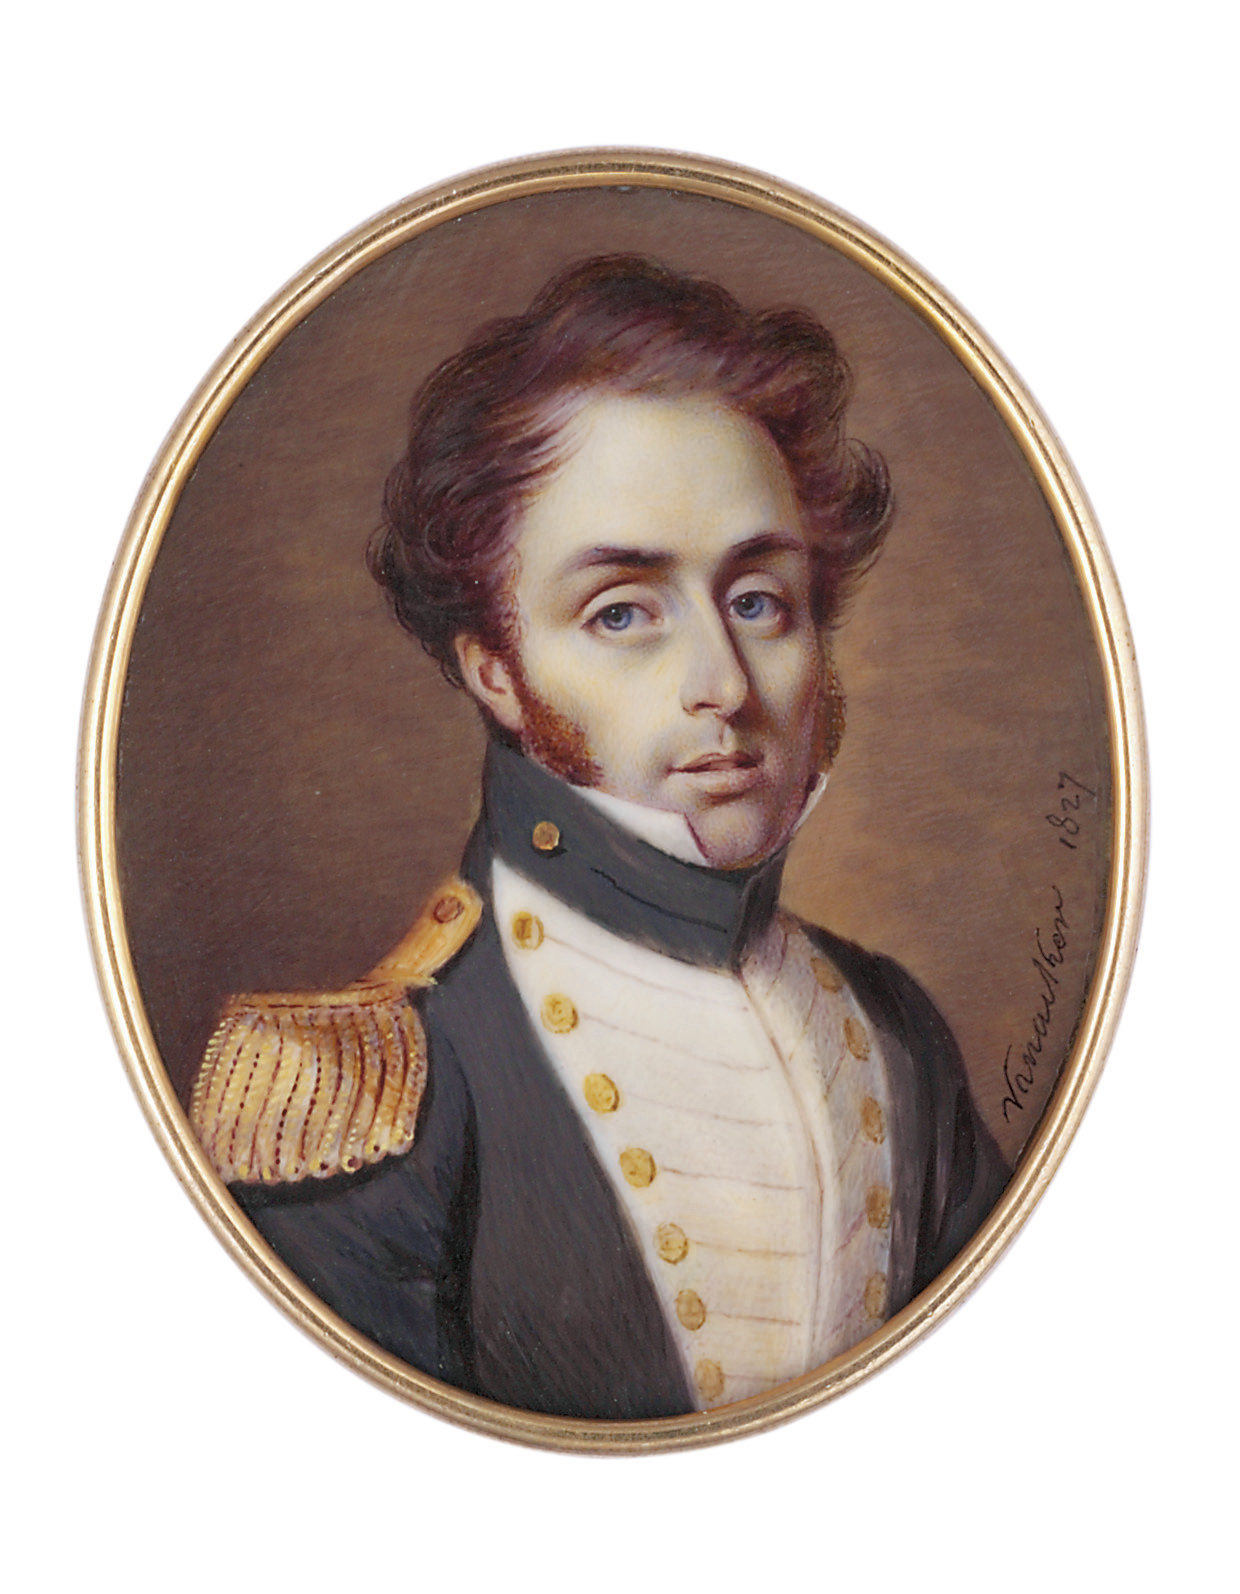 A young Naval Captain, in uniform with white facings, gold buttons and gold epaulette, auburn hair and sideburns